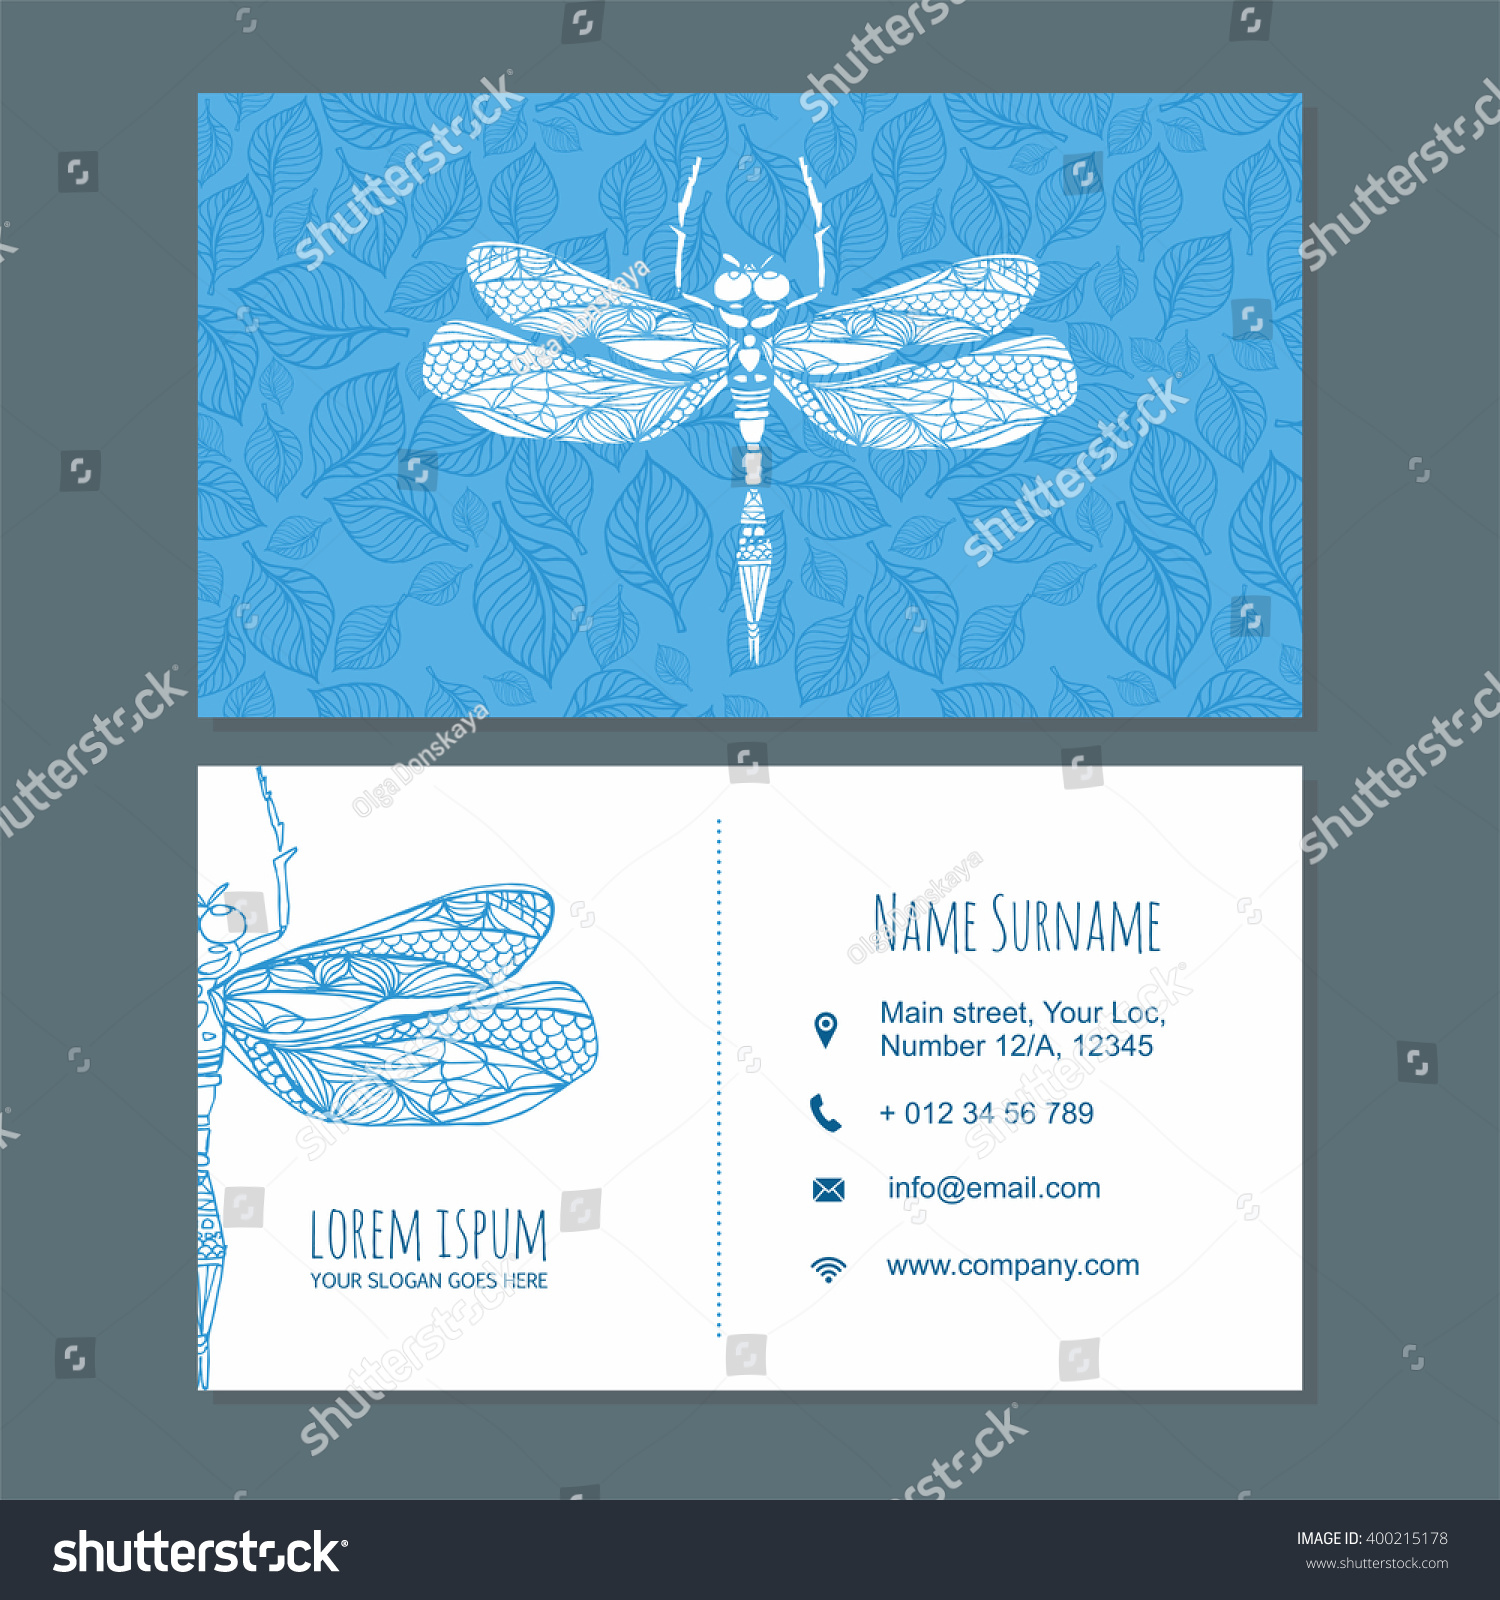 Business Card Visiting Card Template Dragonfly Stock Vector (2018 ...